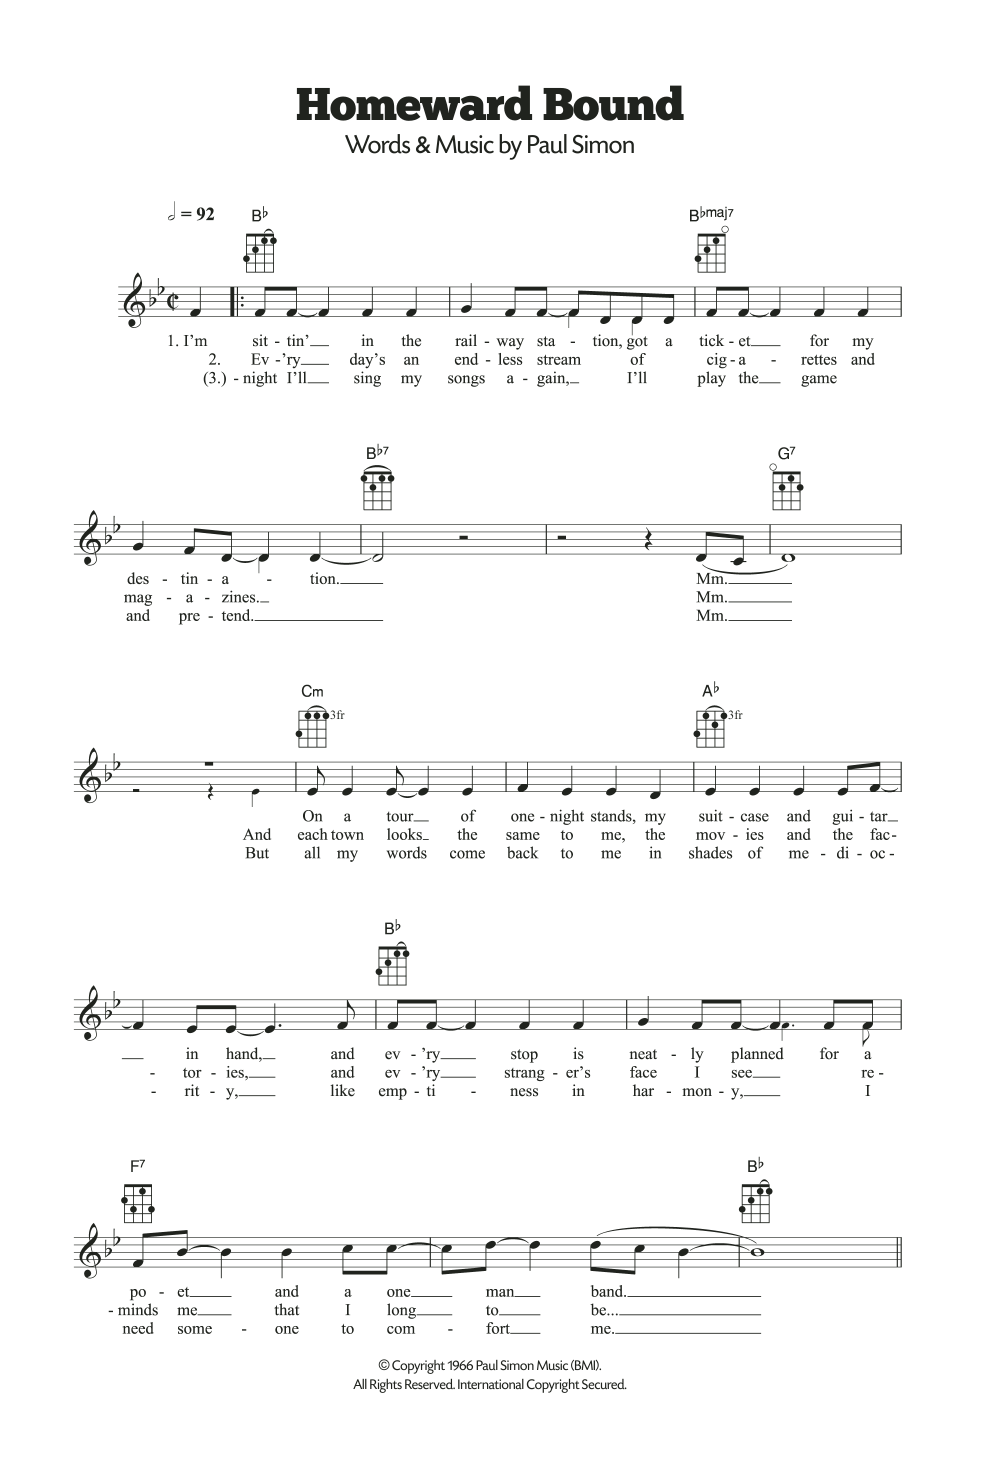 Homeward bound guitar chords